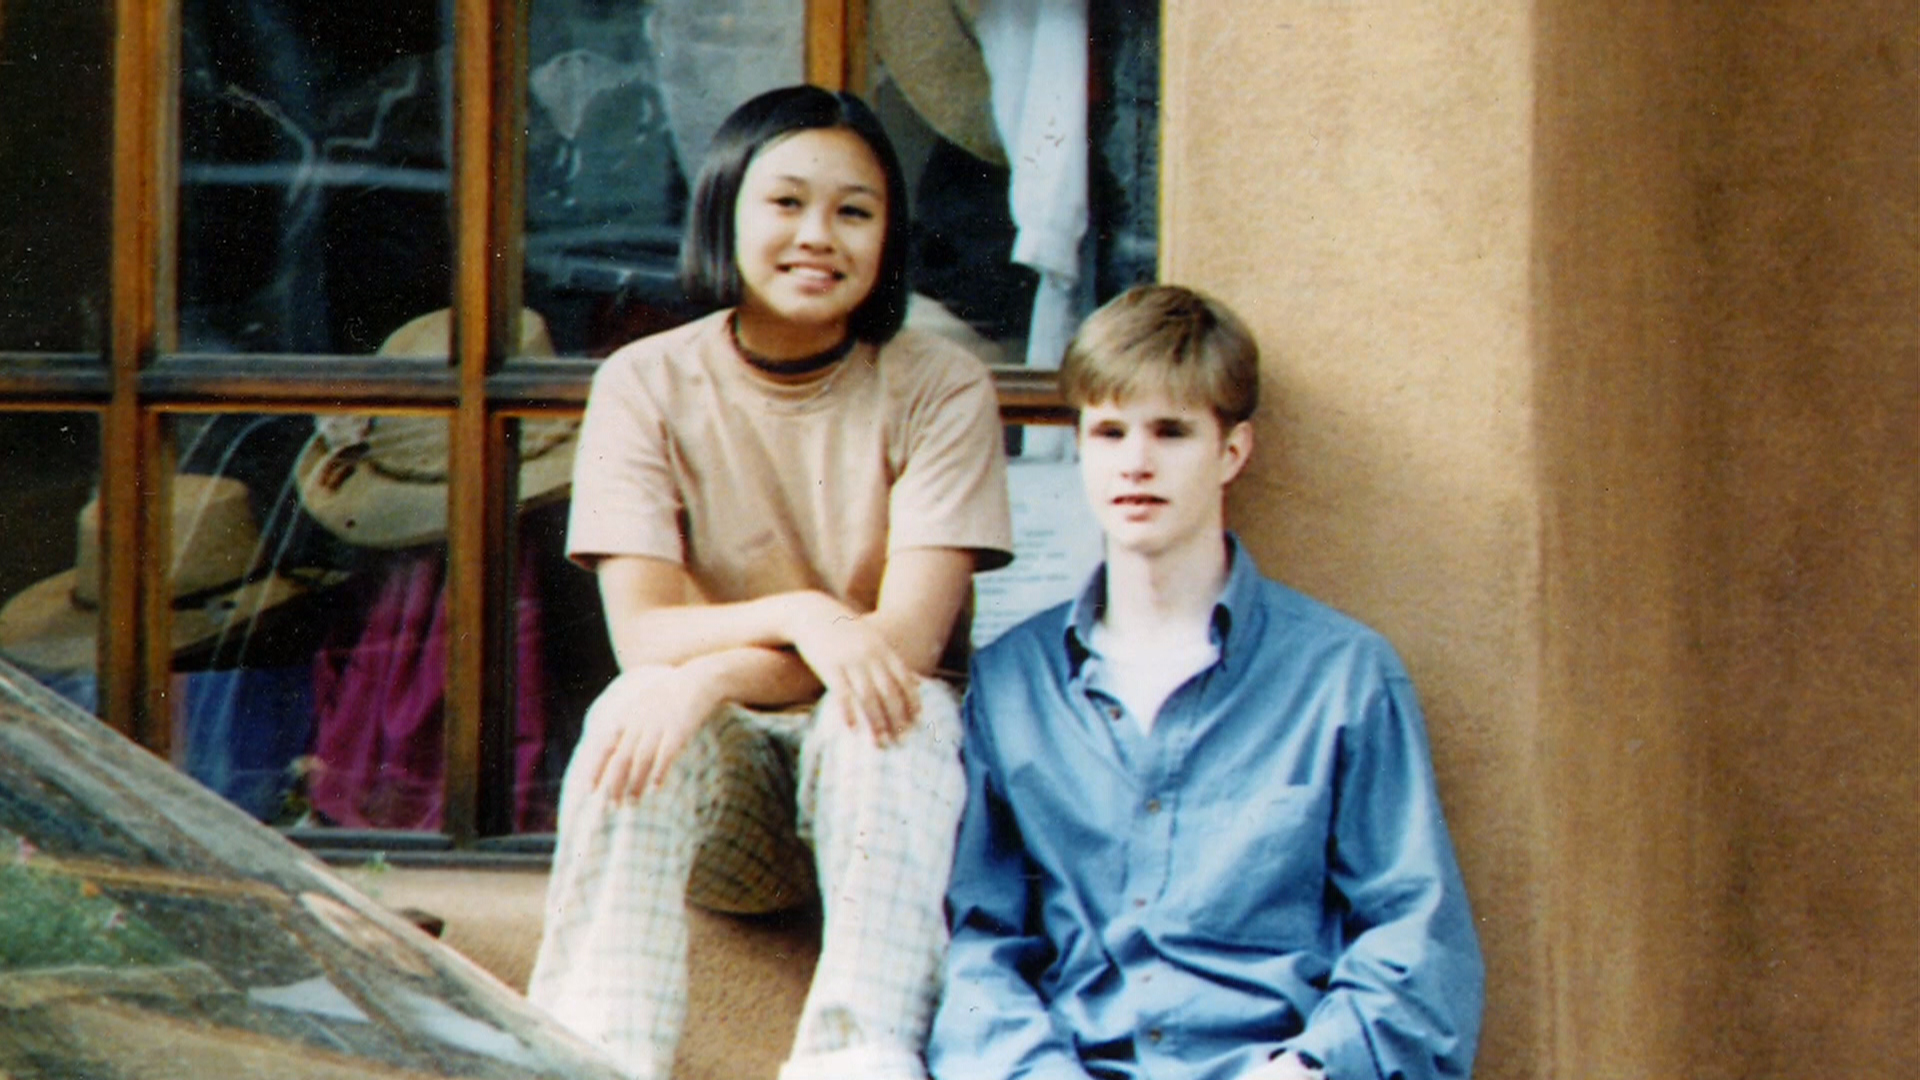 exploration of the matthew shepard event essay In october 1998 in the middle of the prairie outside laramie, wyoming, matthew shepard, a 21 year old student at the university of wyoming, was tied to a fence post, severely beaten, robbed, , tortured and left, alone, to die.